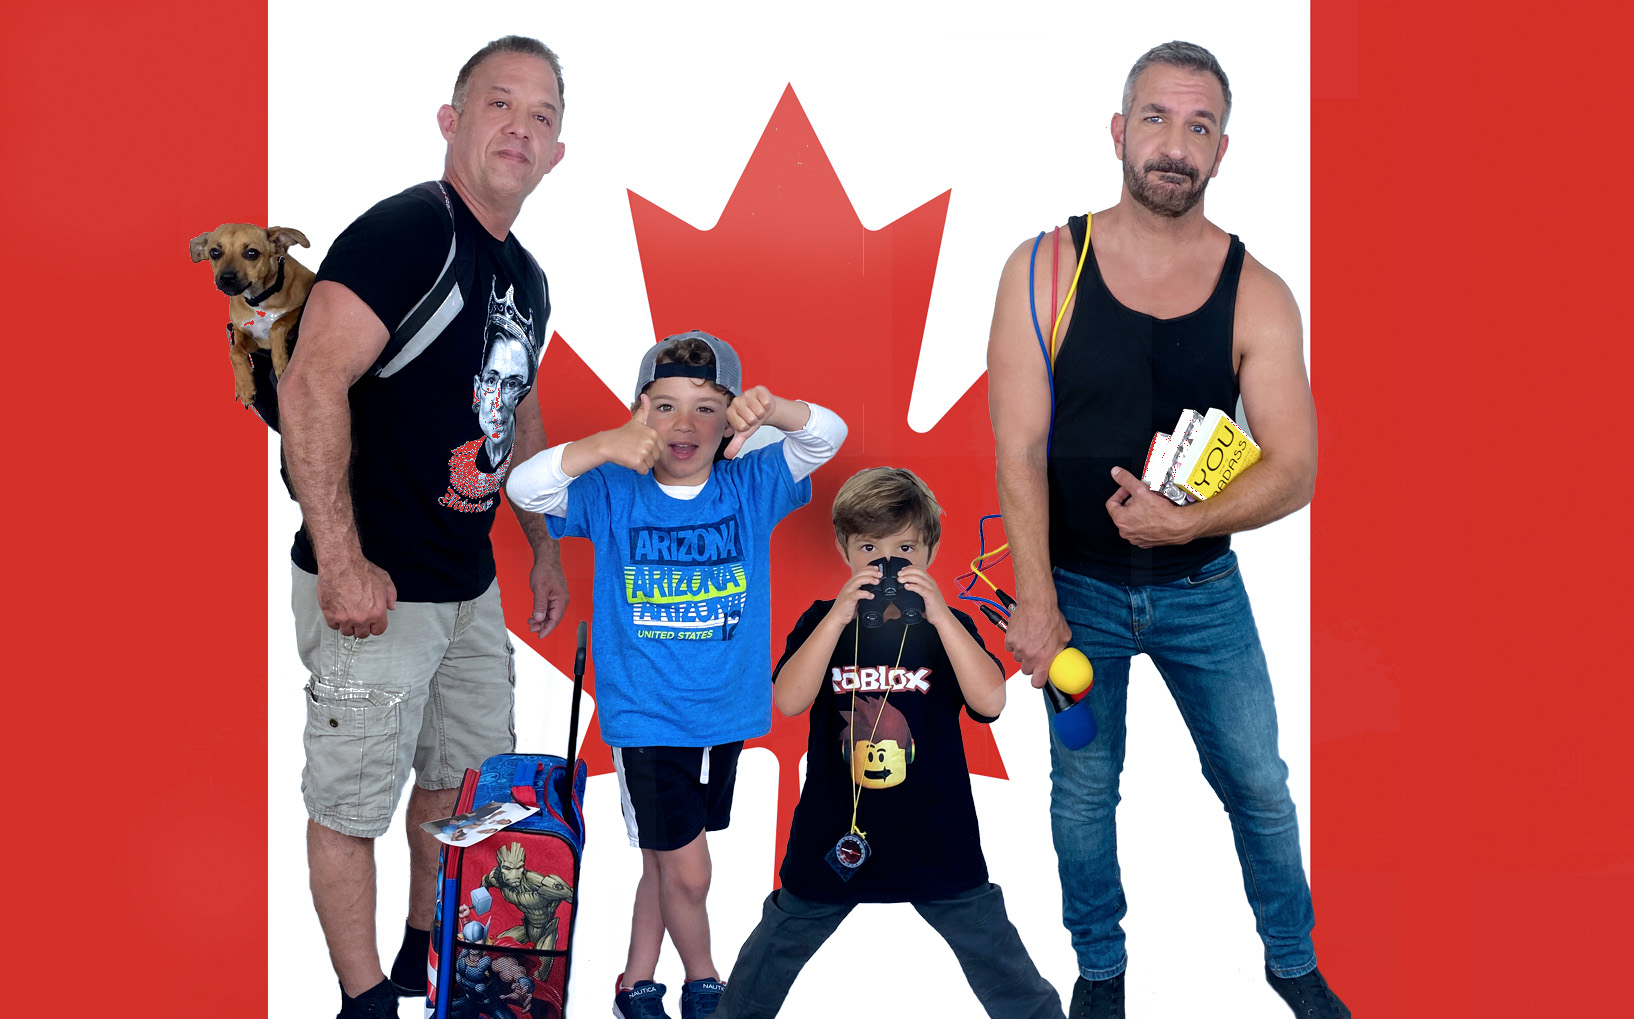 Daddy Squared Around the World: Canada